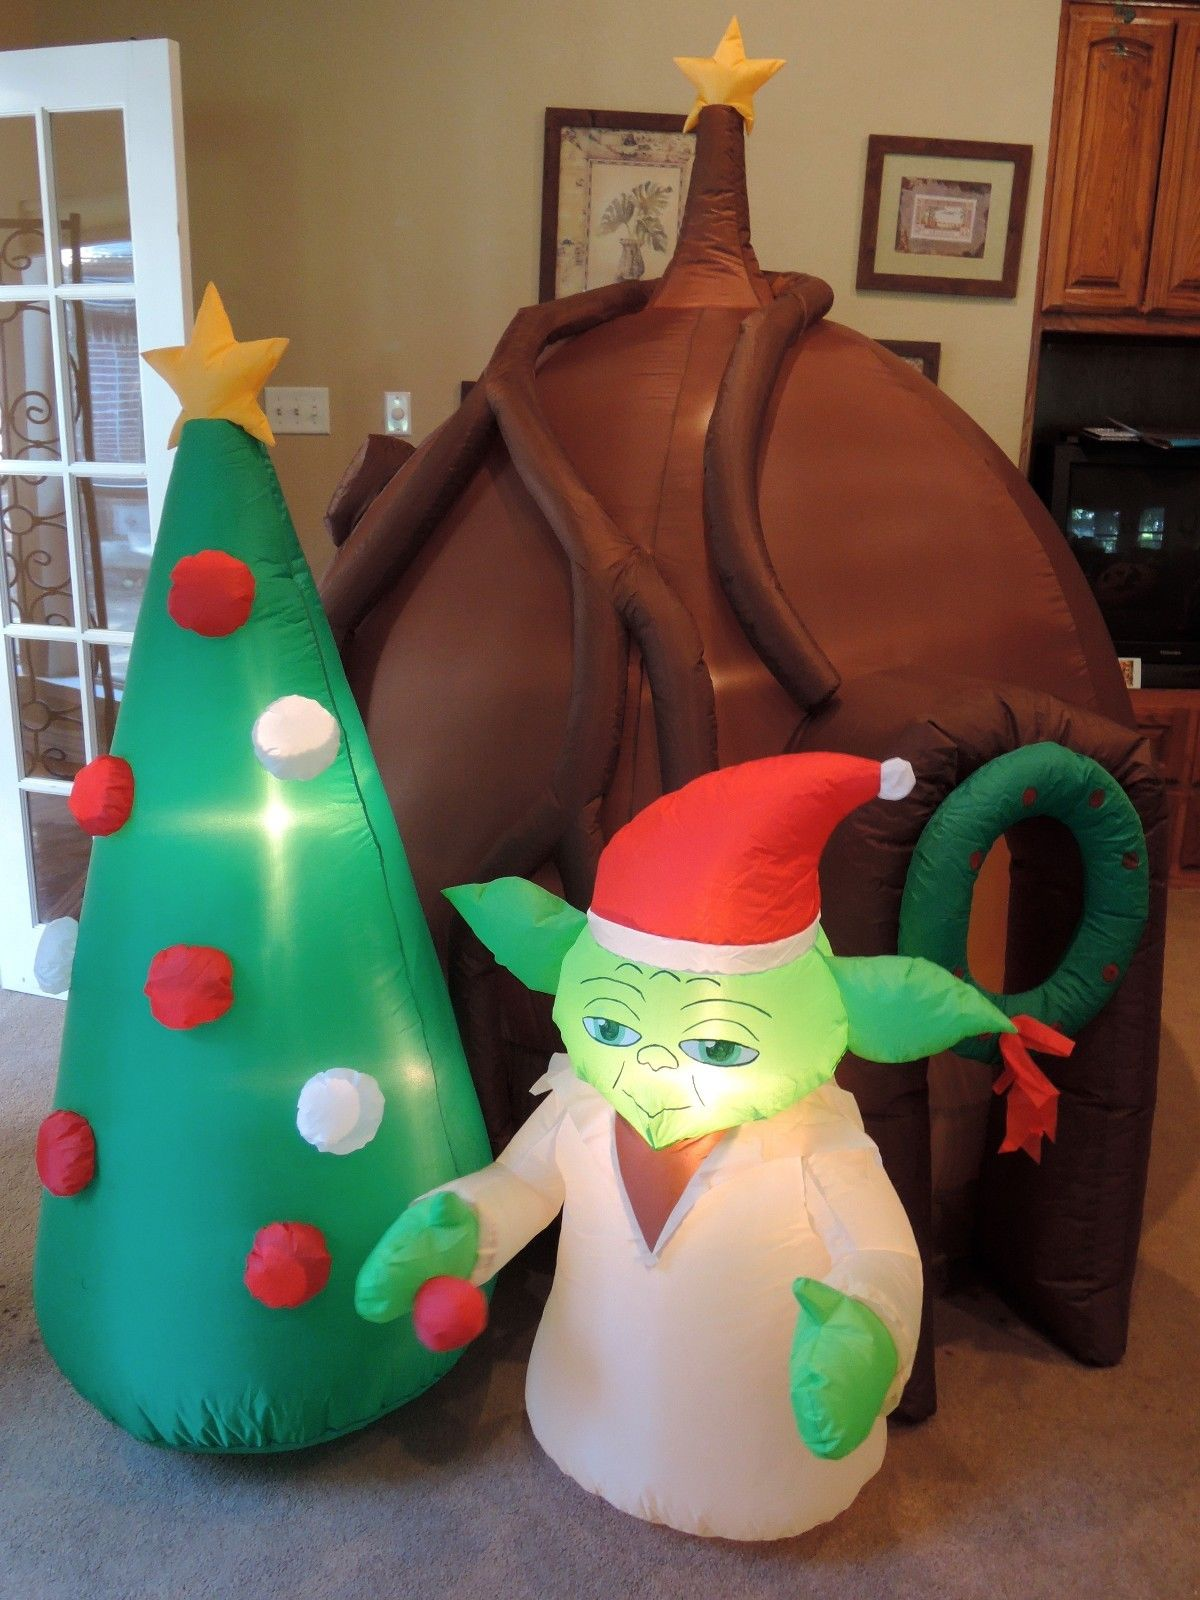 gemmy inflatable star wars christmas scenejpg - Star Wars Inflatable Christmas Decorations